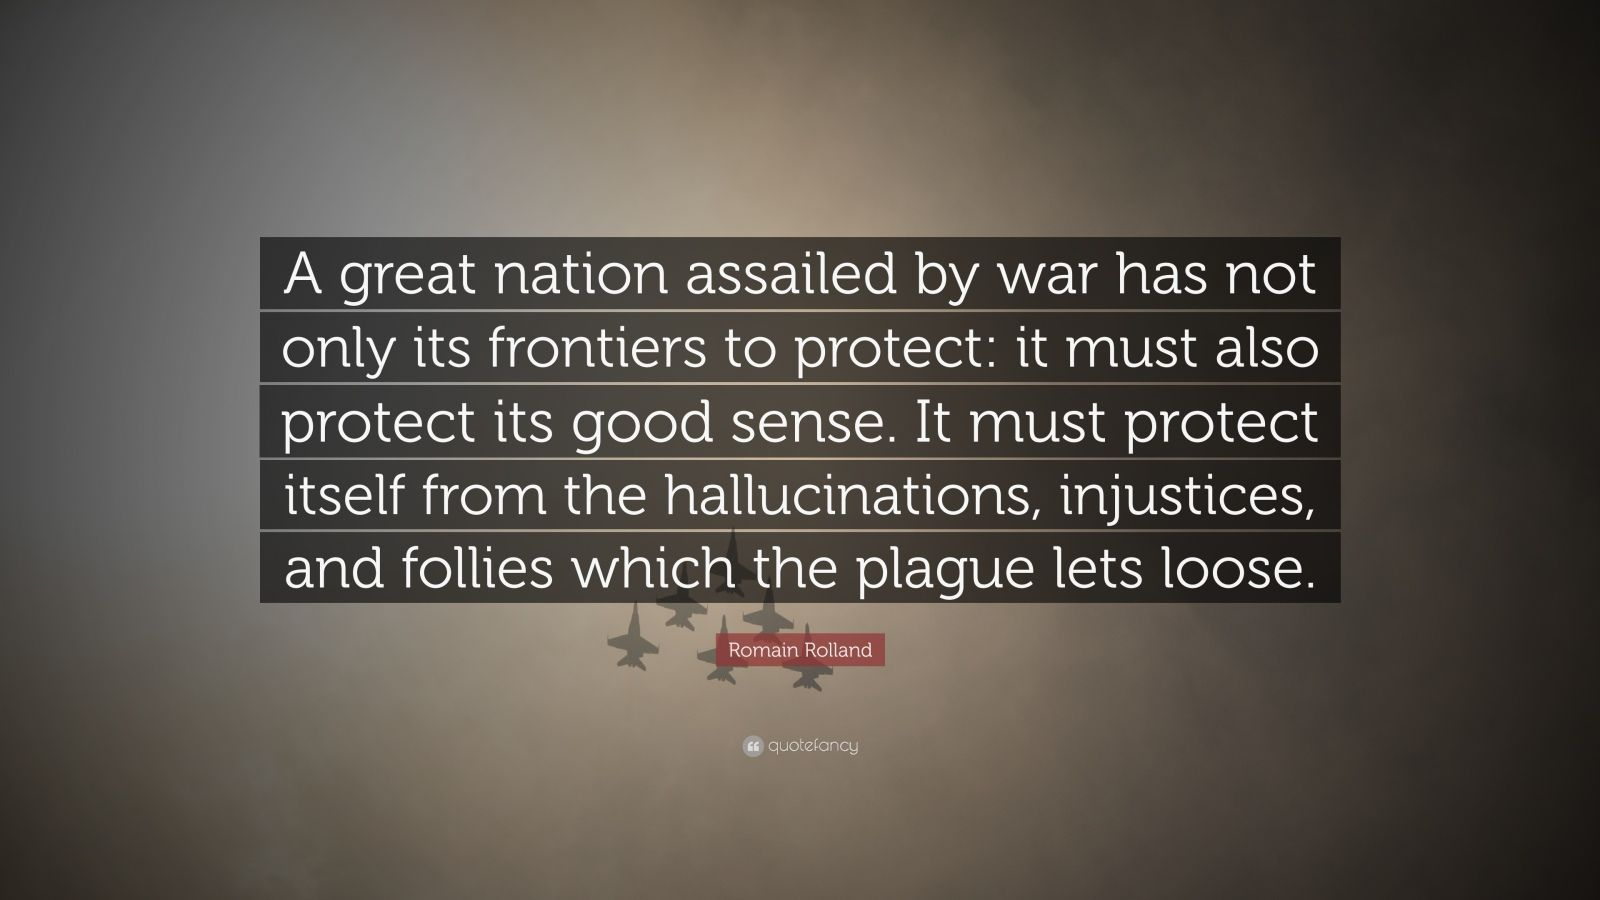 "Romain Rolland Quote: ""A great nation assailed by war has not only its frontiers to protect: it must also protect its good sense. It must protect itself from the hallucinations, injustices, and follies which the plague lets loose."""